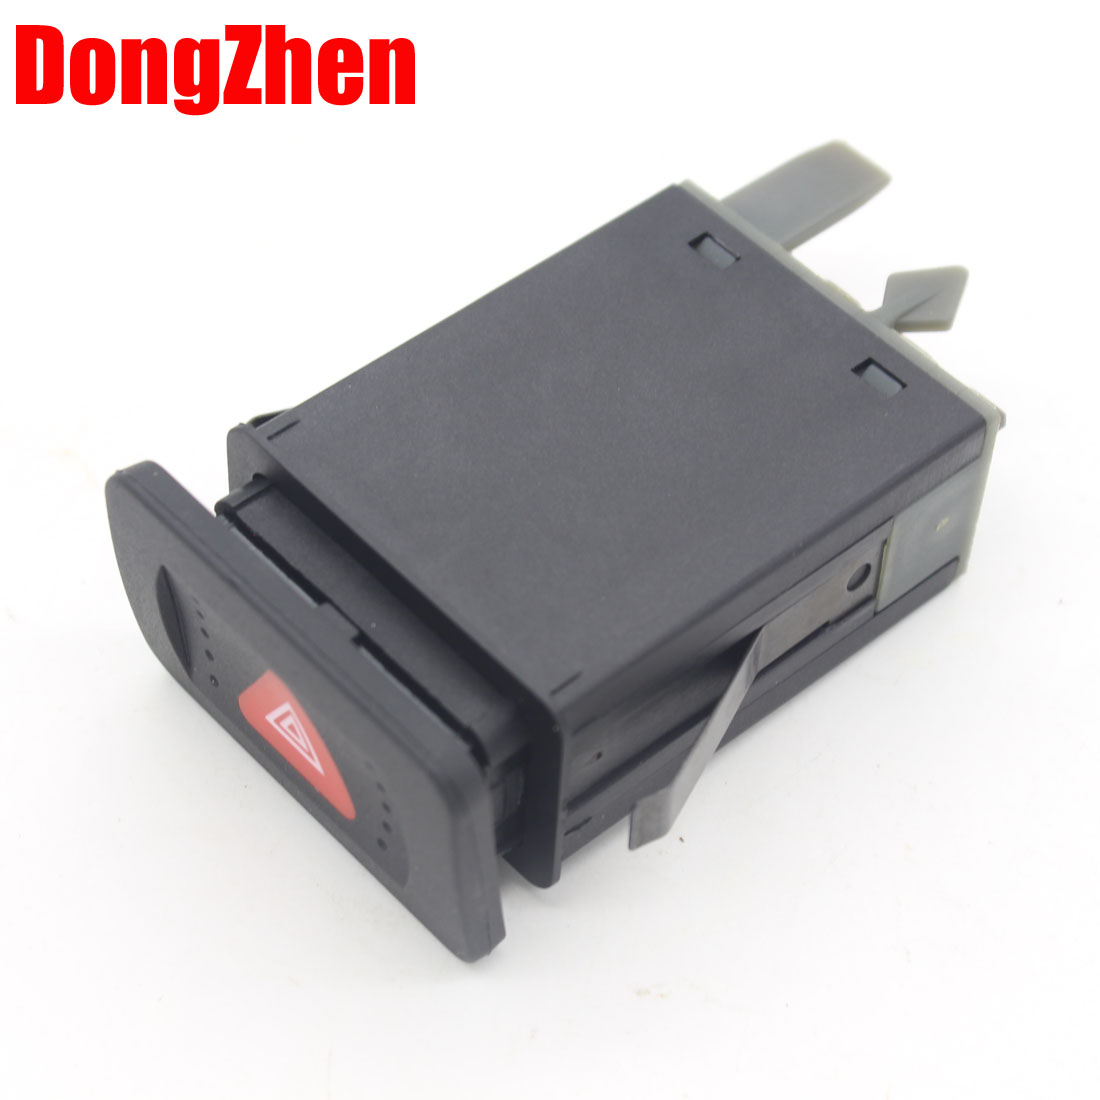 DongZhen Switch Hazard Warning Flash Switchs Button For VW Jetta 4 Bora Golf MK4 1J0 953 235 C 1pcs